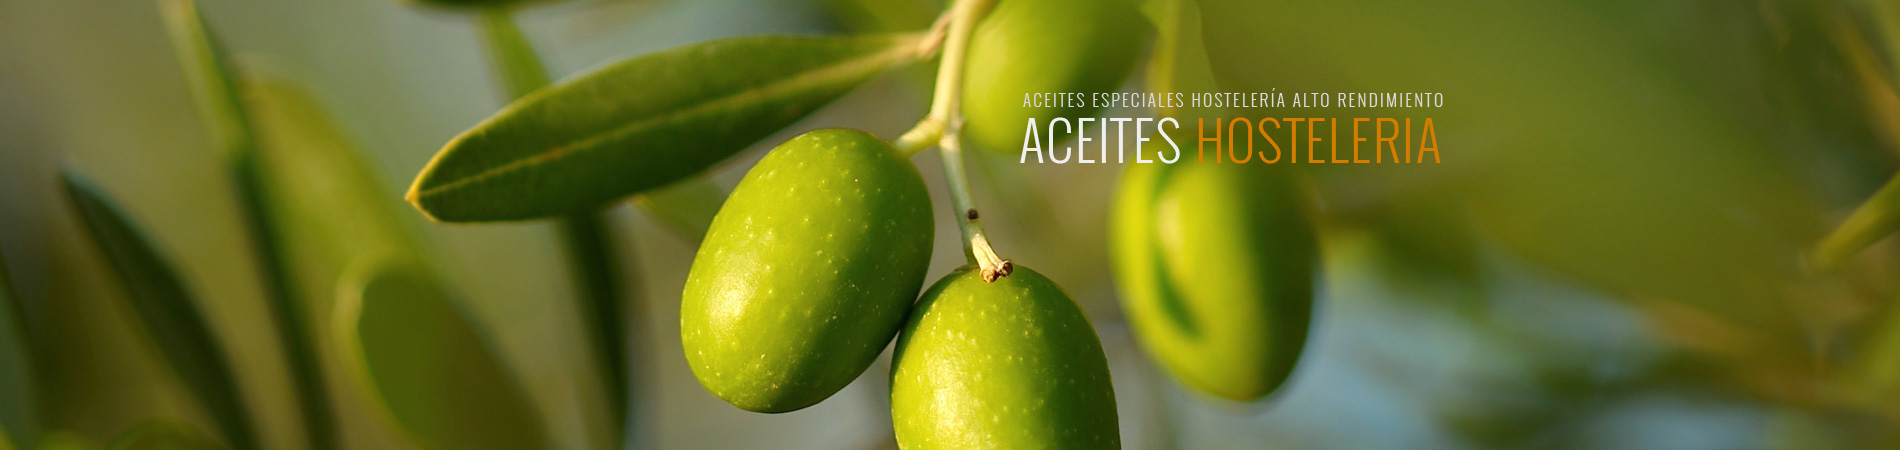 aceites-especiales-hosteleria1